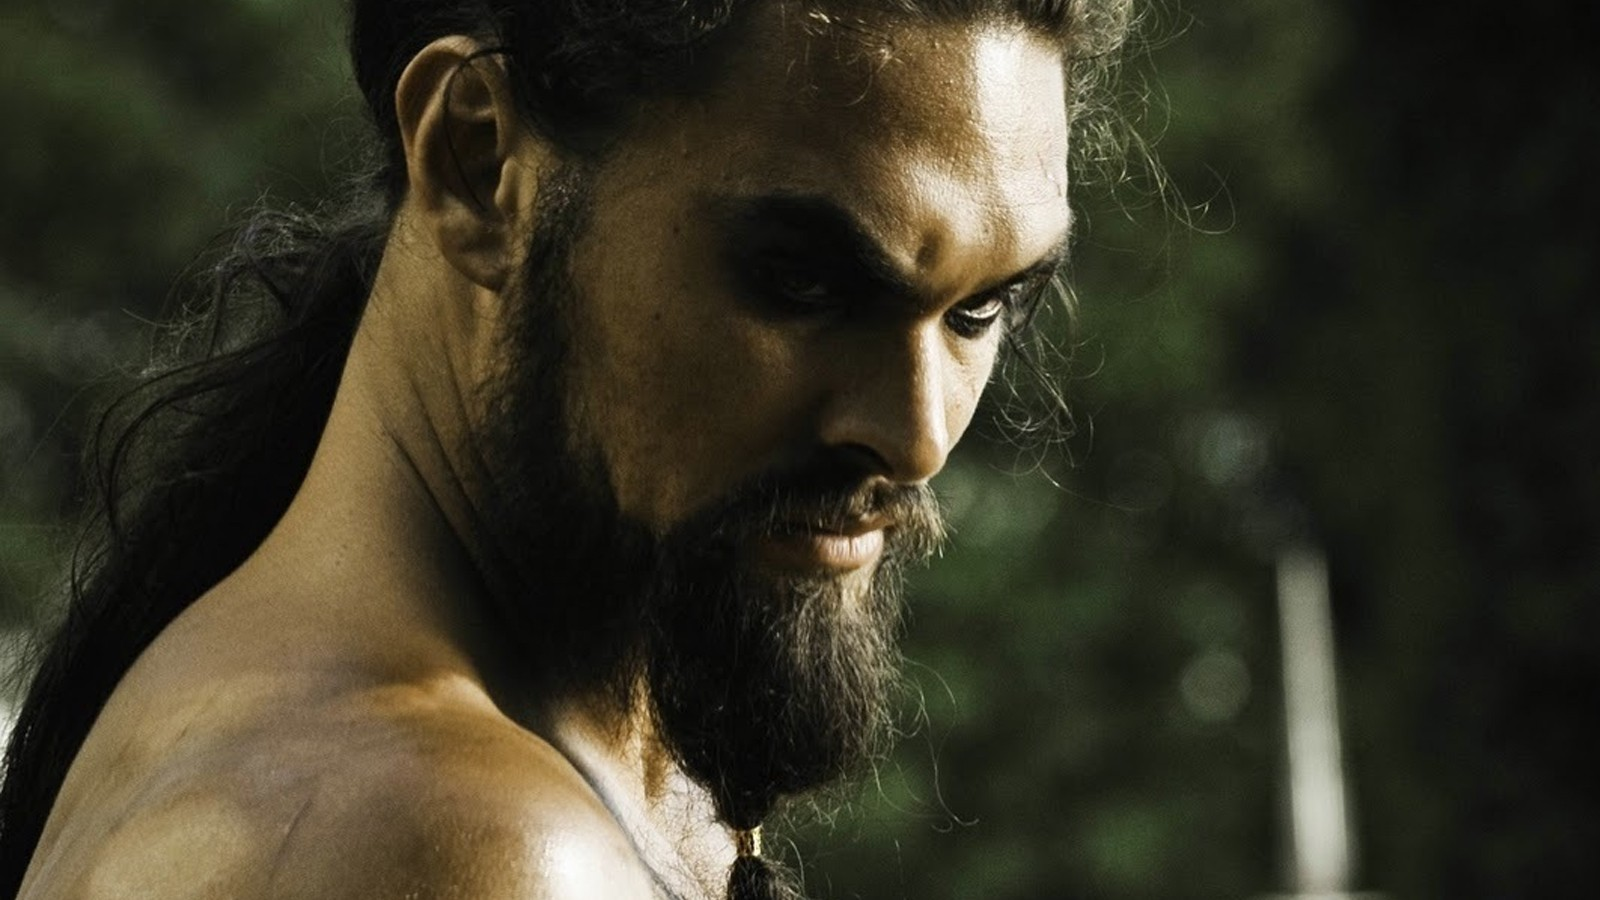 [Image: Khal_Drogo_Wallpaper_HD_Vvallpaper.Net.jpg]